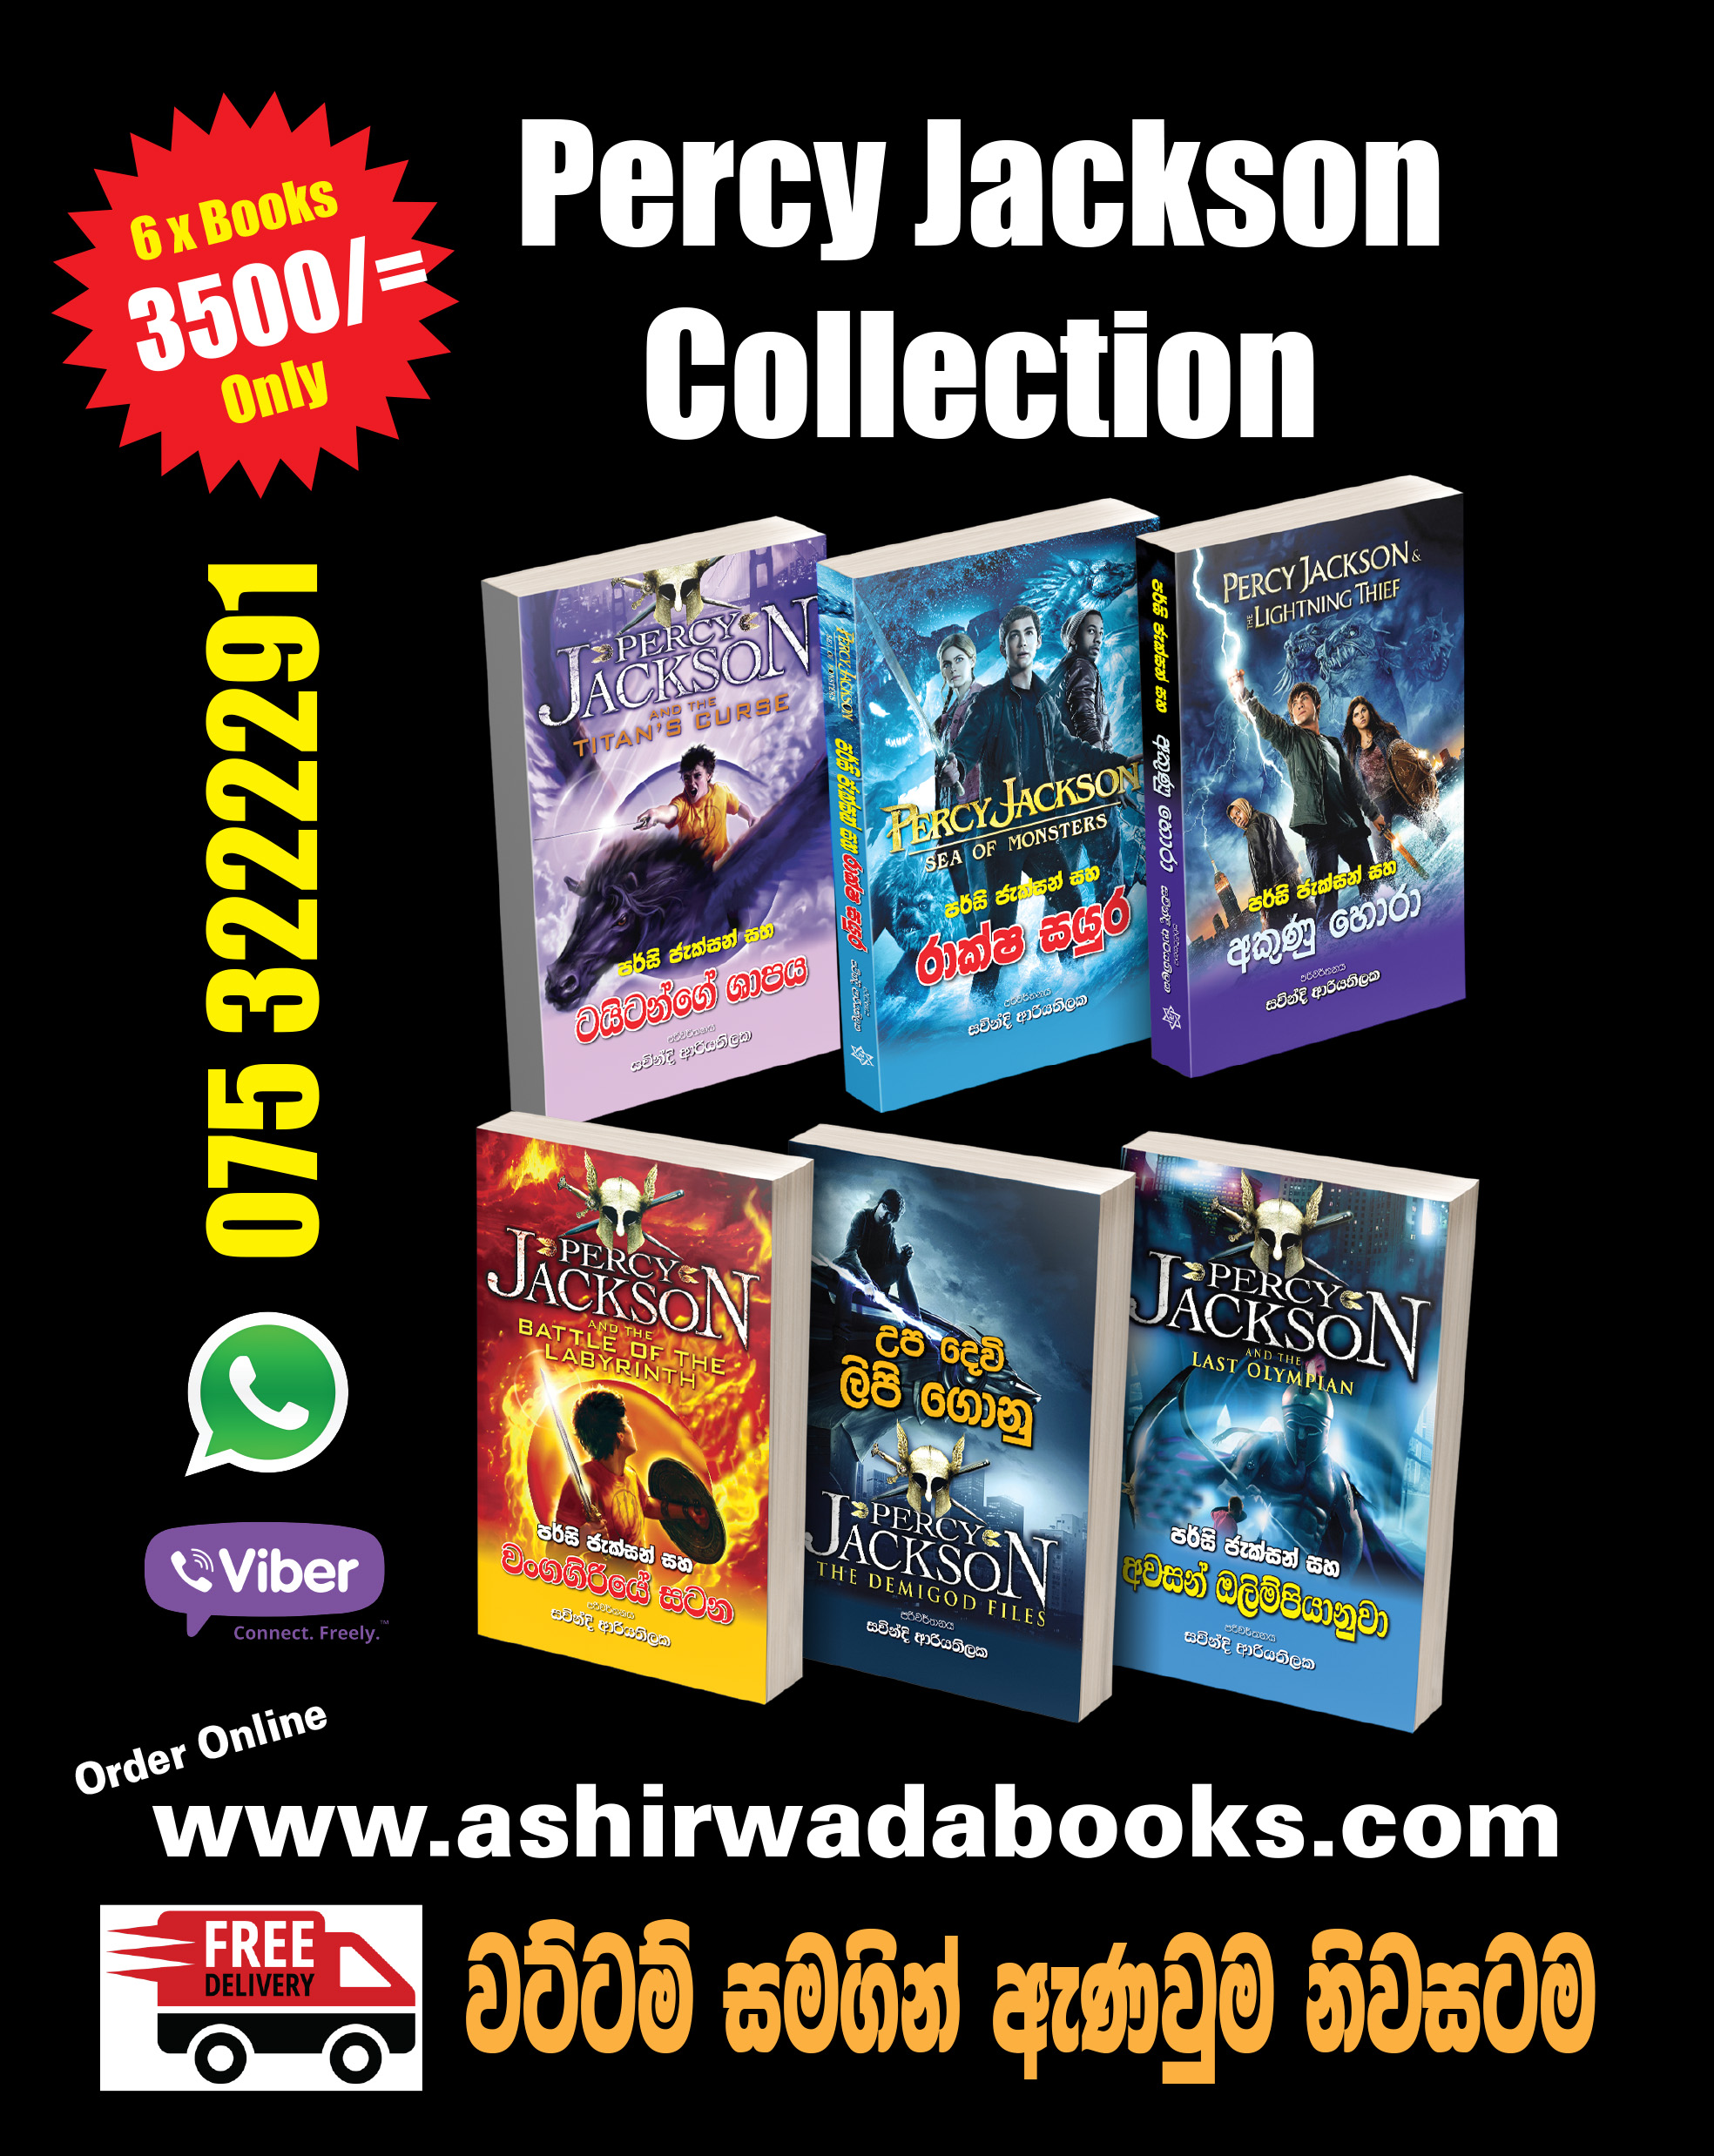 Percy Jackson Books Sinhala Translation Pdf Free Download